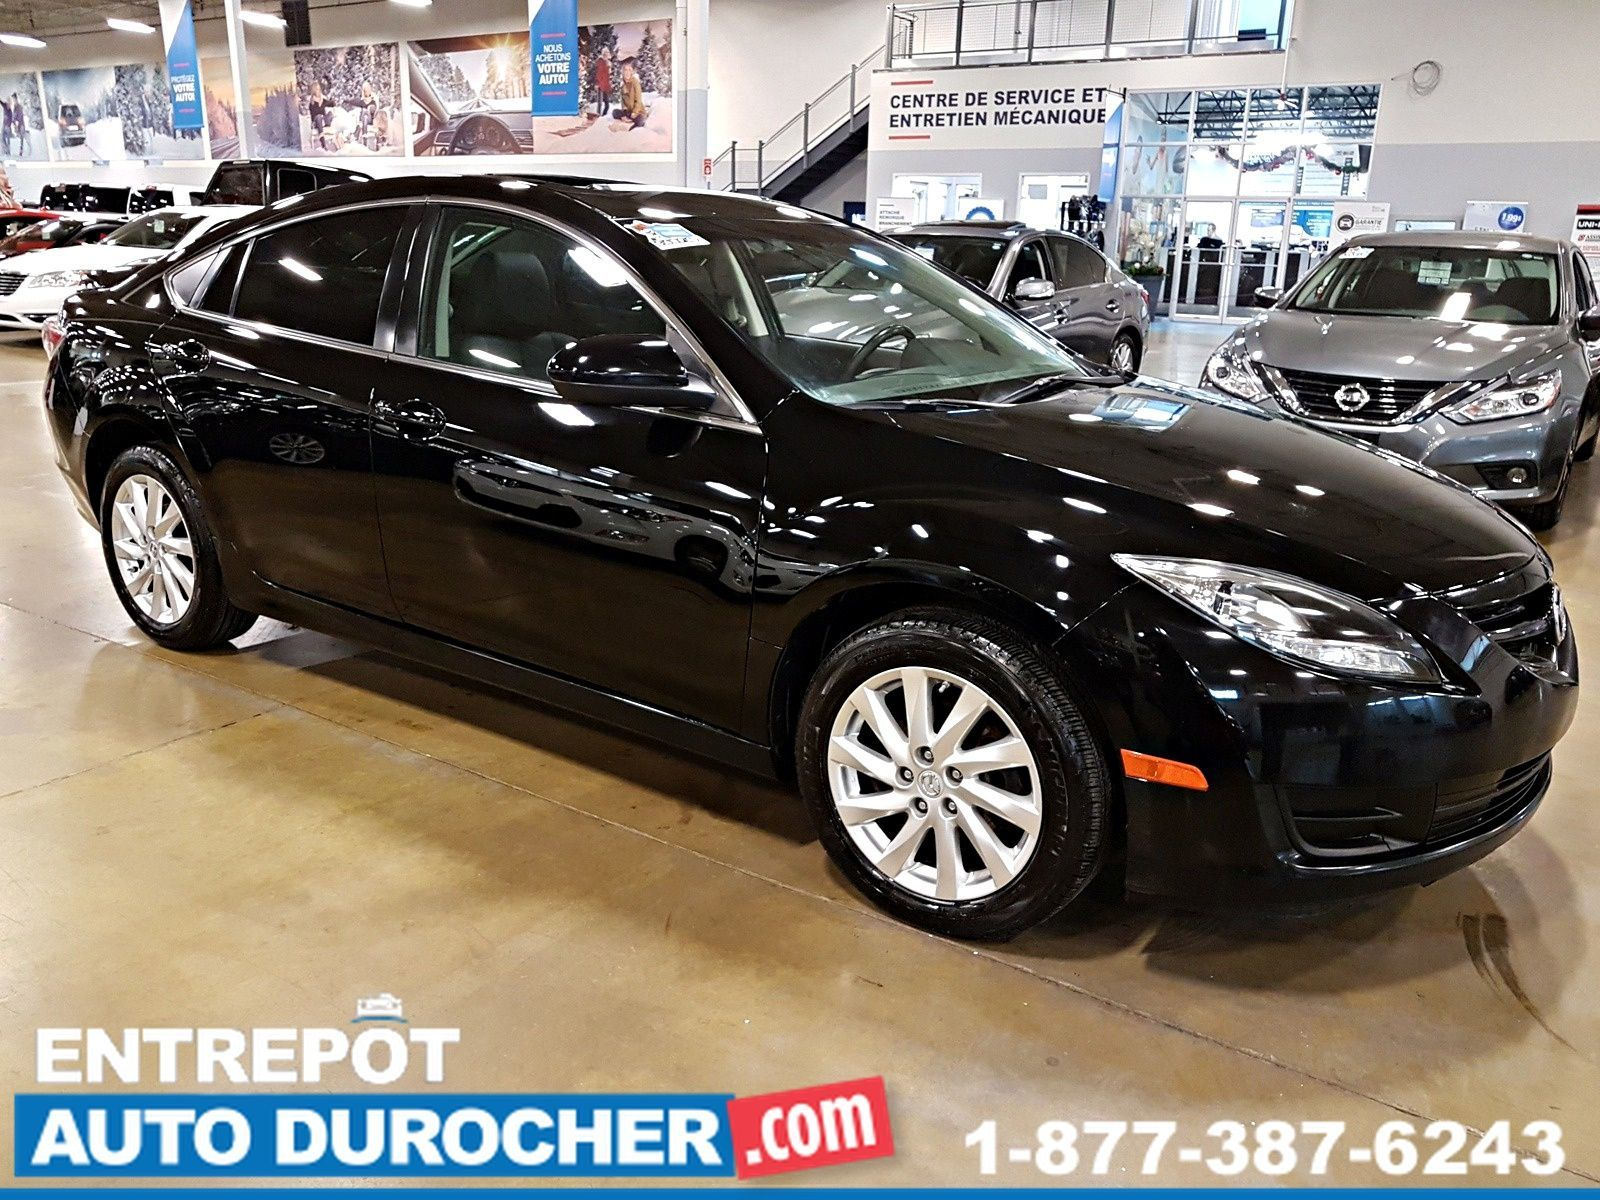 2011 Mazda Mazda6 GS Automatique - TOIT OUVRANT - Air Climatisé - Heated Seats